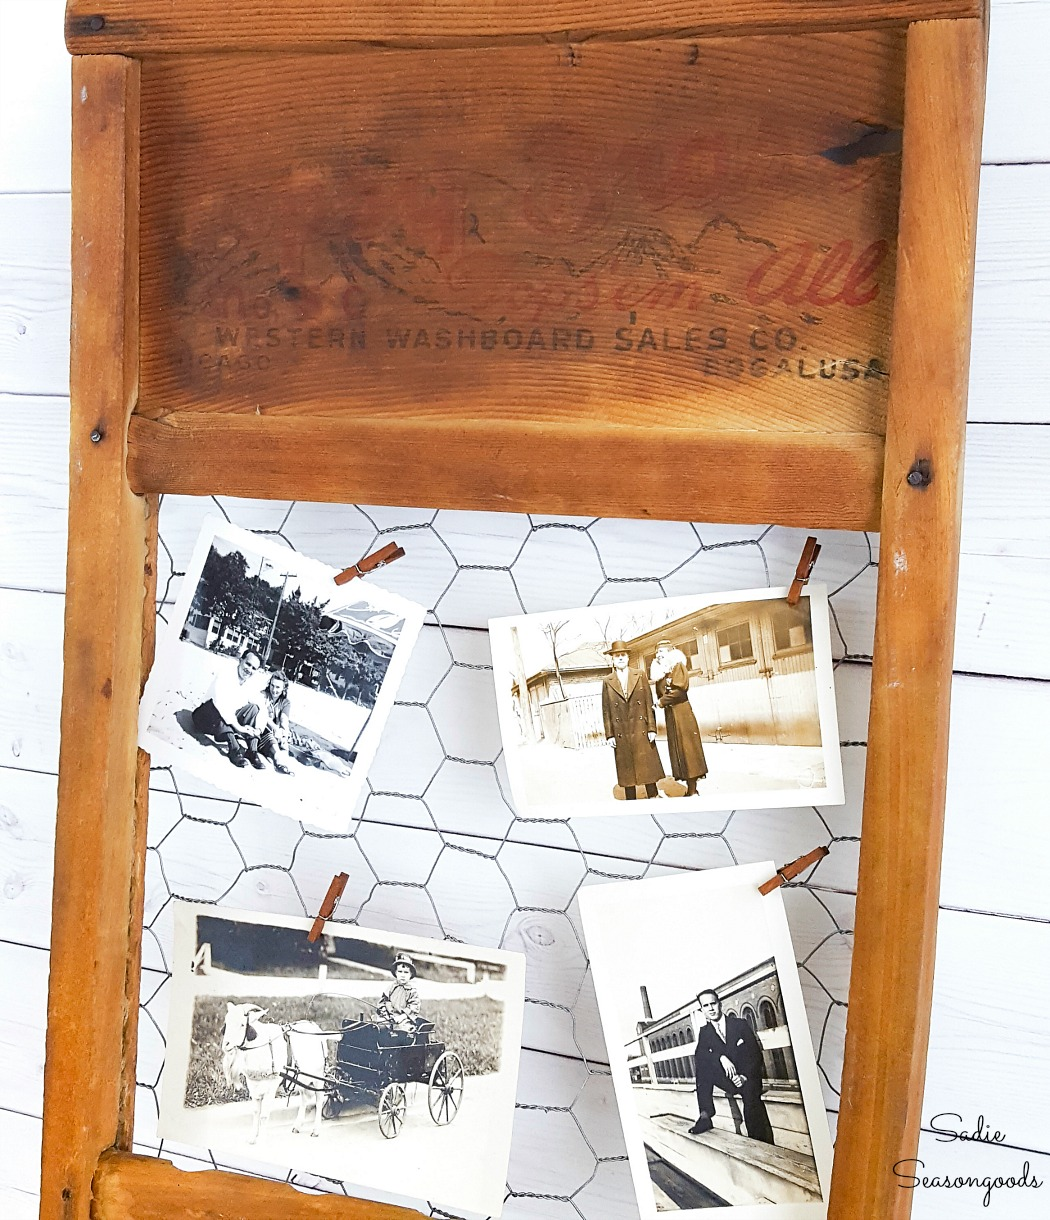 Old photographs that have been clipped to a chicken wire frame in an old washboard